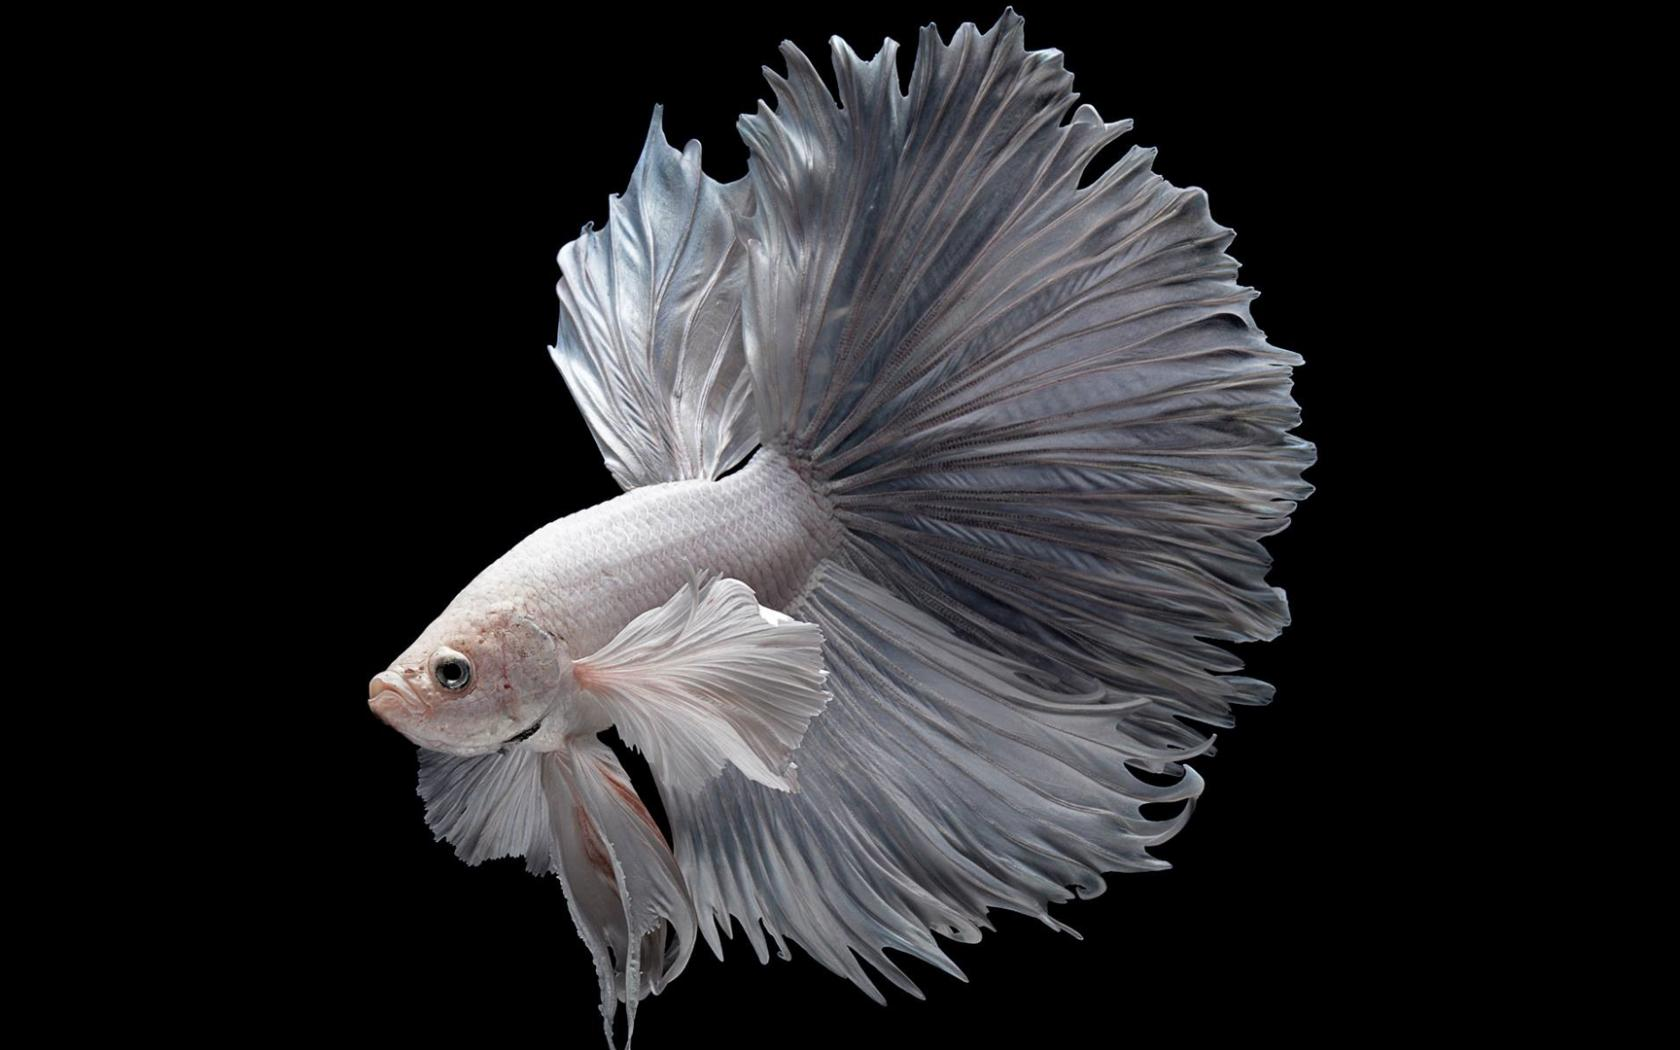 Albino Betta Fish Picture 2 Of 20 In Hd With 1920x1080 Hd Wallpapers Wallpapers Download